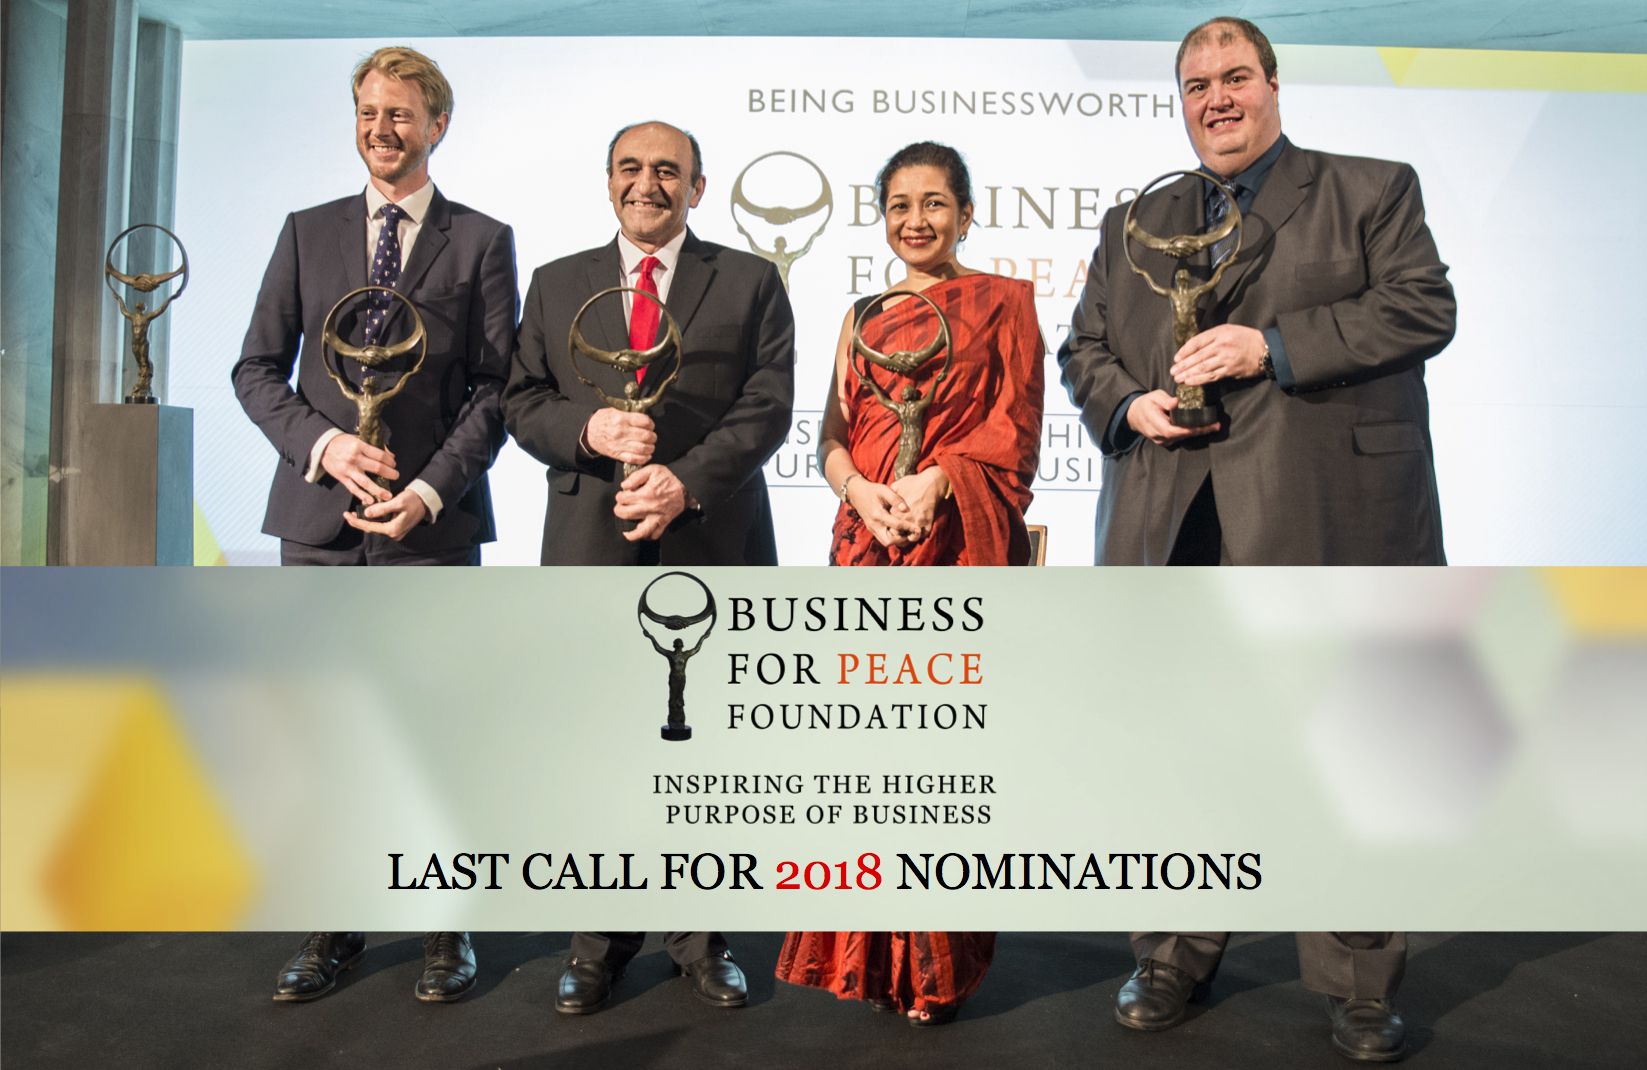 Last Call 2018 Nominations